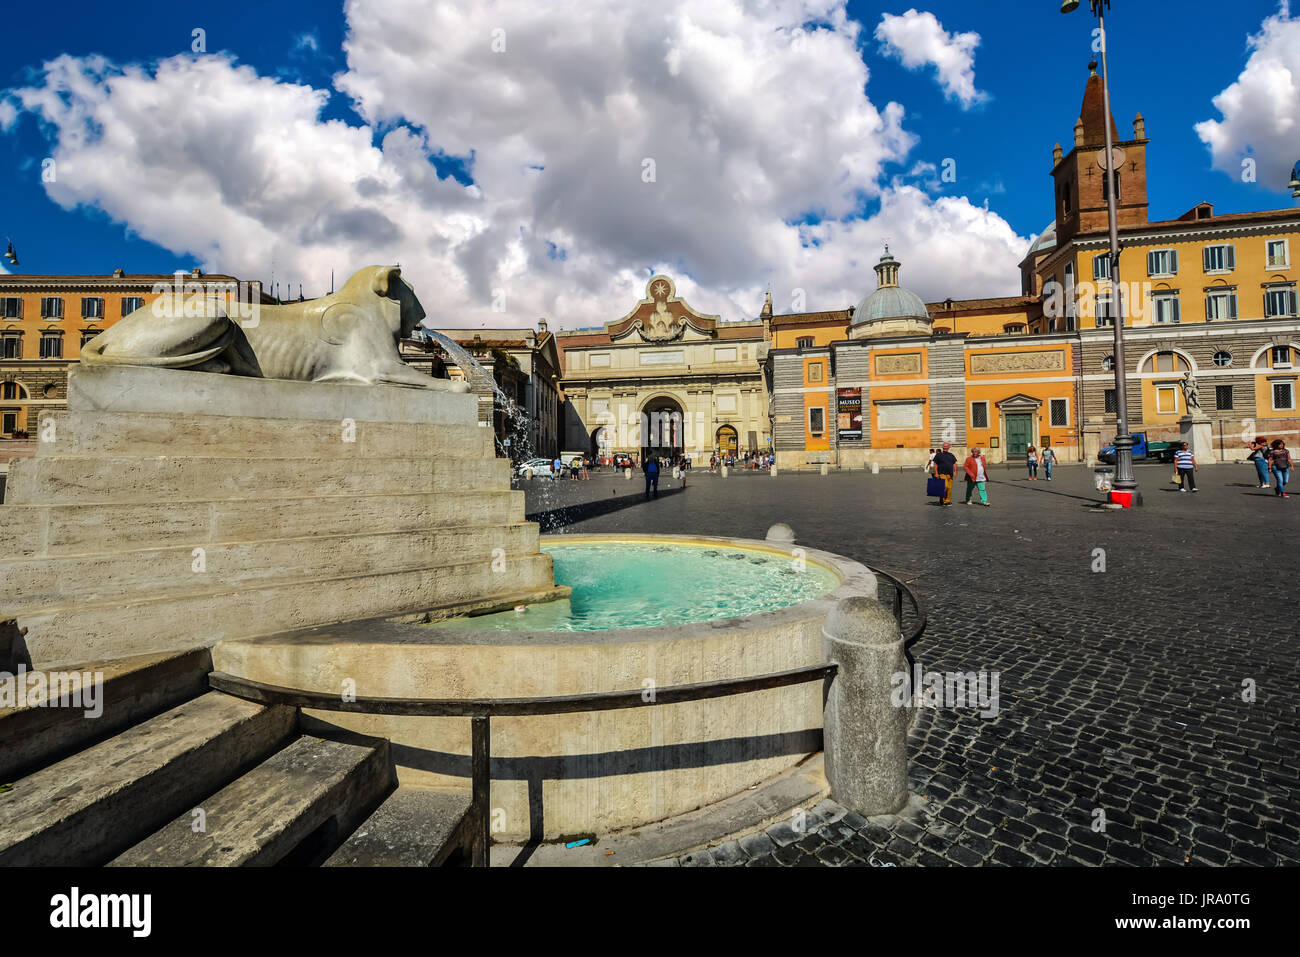 Lion fountain or Fontana Dei Leoni In Piazza Del Popolo on a sunny, partly cloudy day in Rome Italy - Stock Image